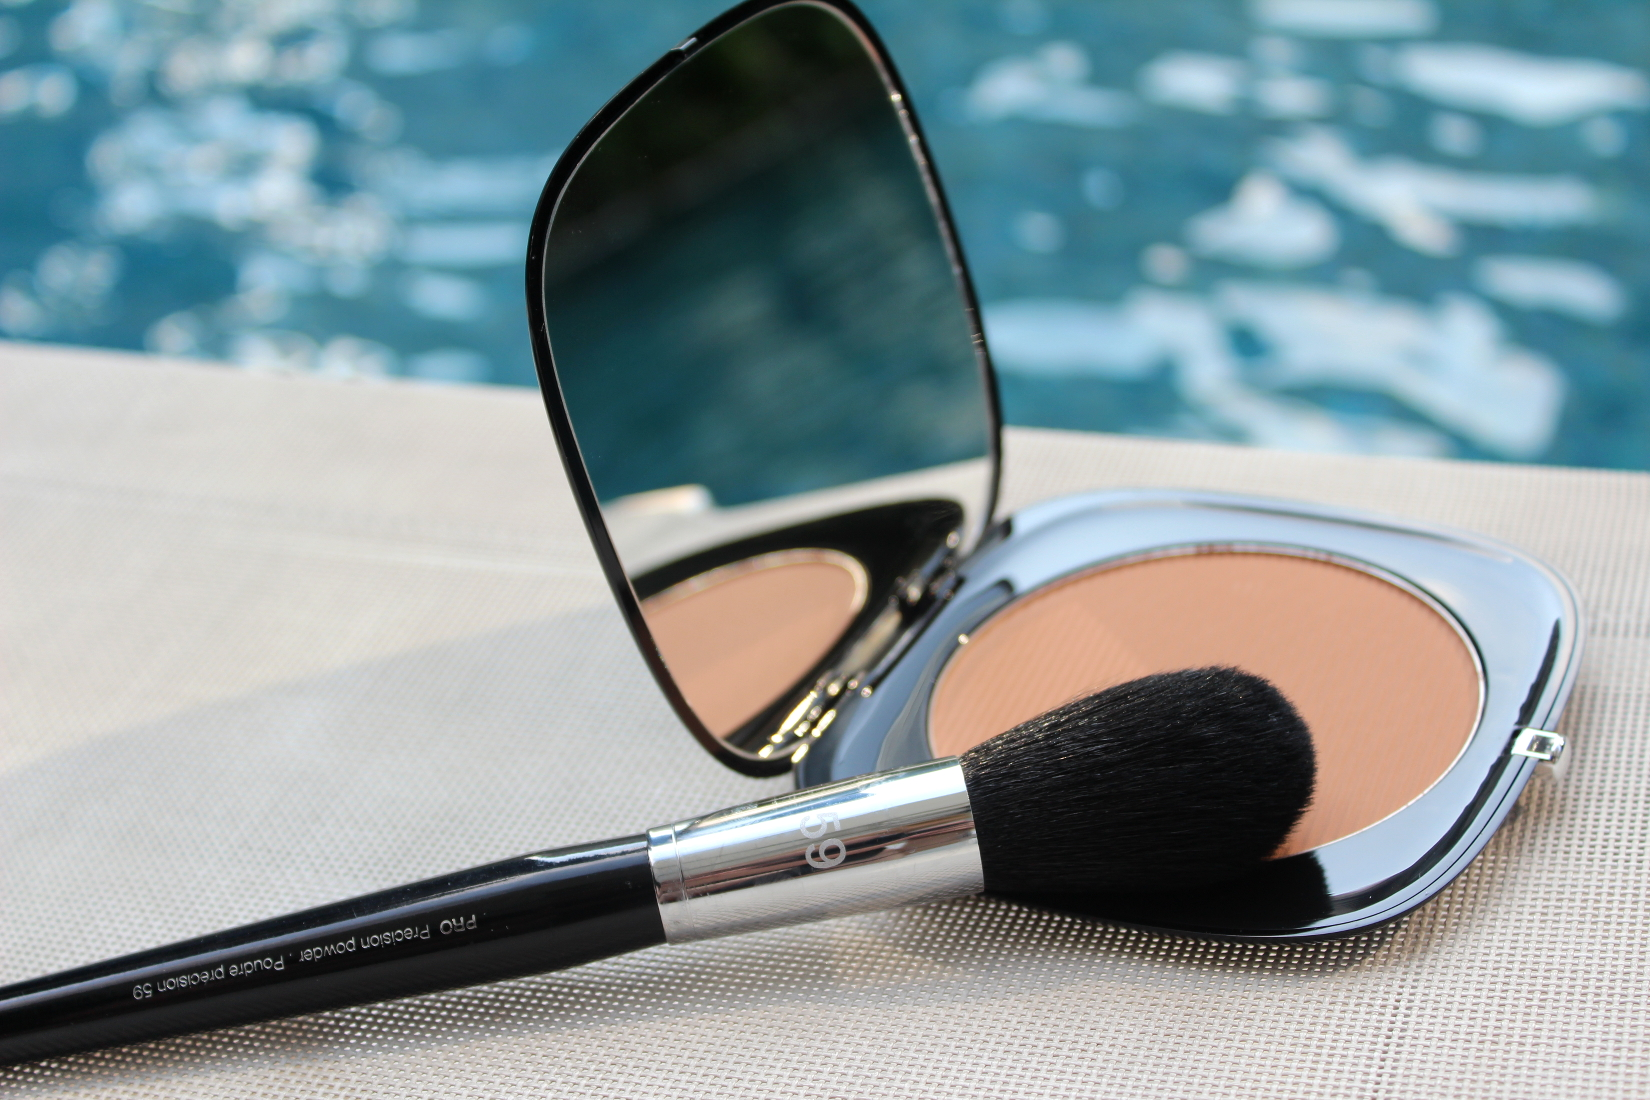 Makeup Bronzer O!Mega Bronze by MARC JACOBS und SEPHORA Pro Precision powder Brush 59